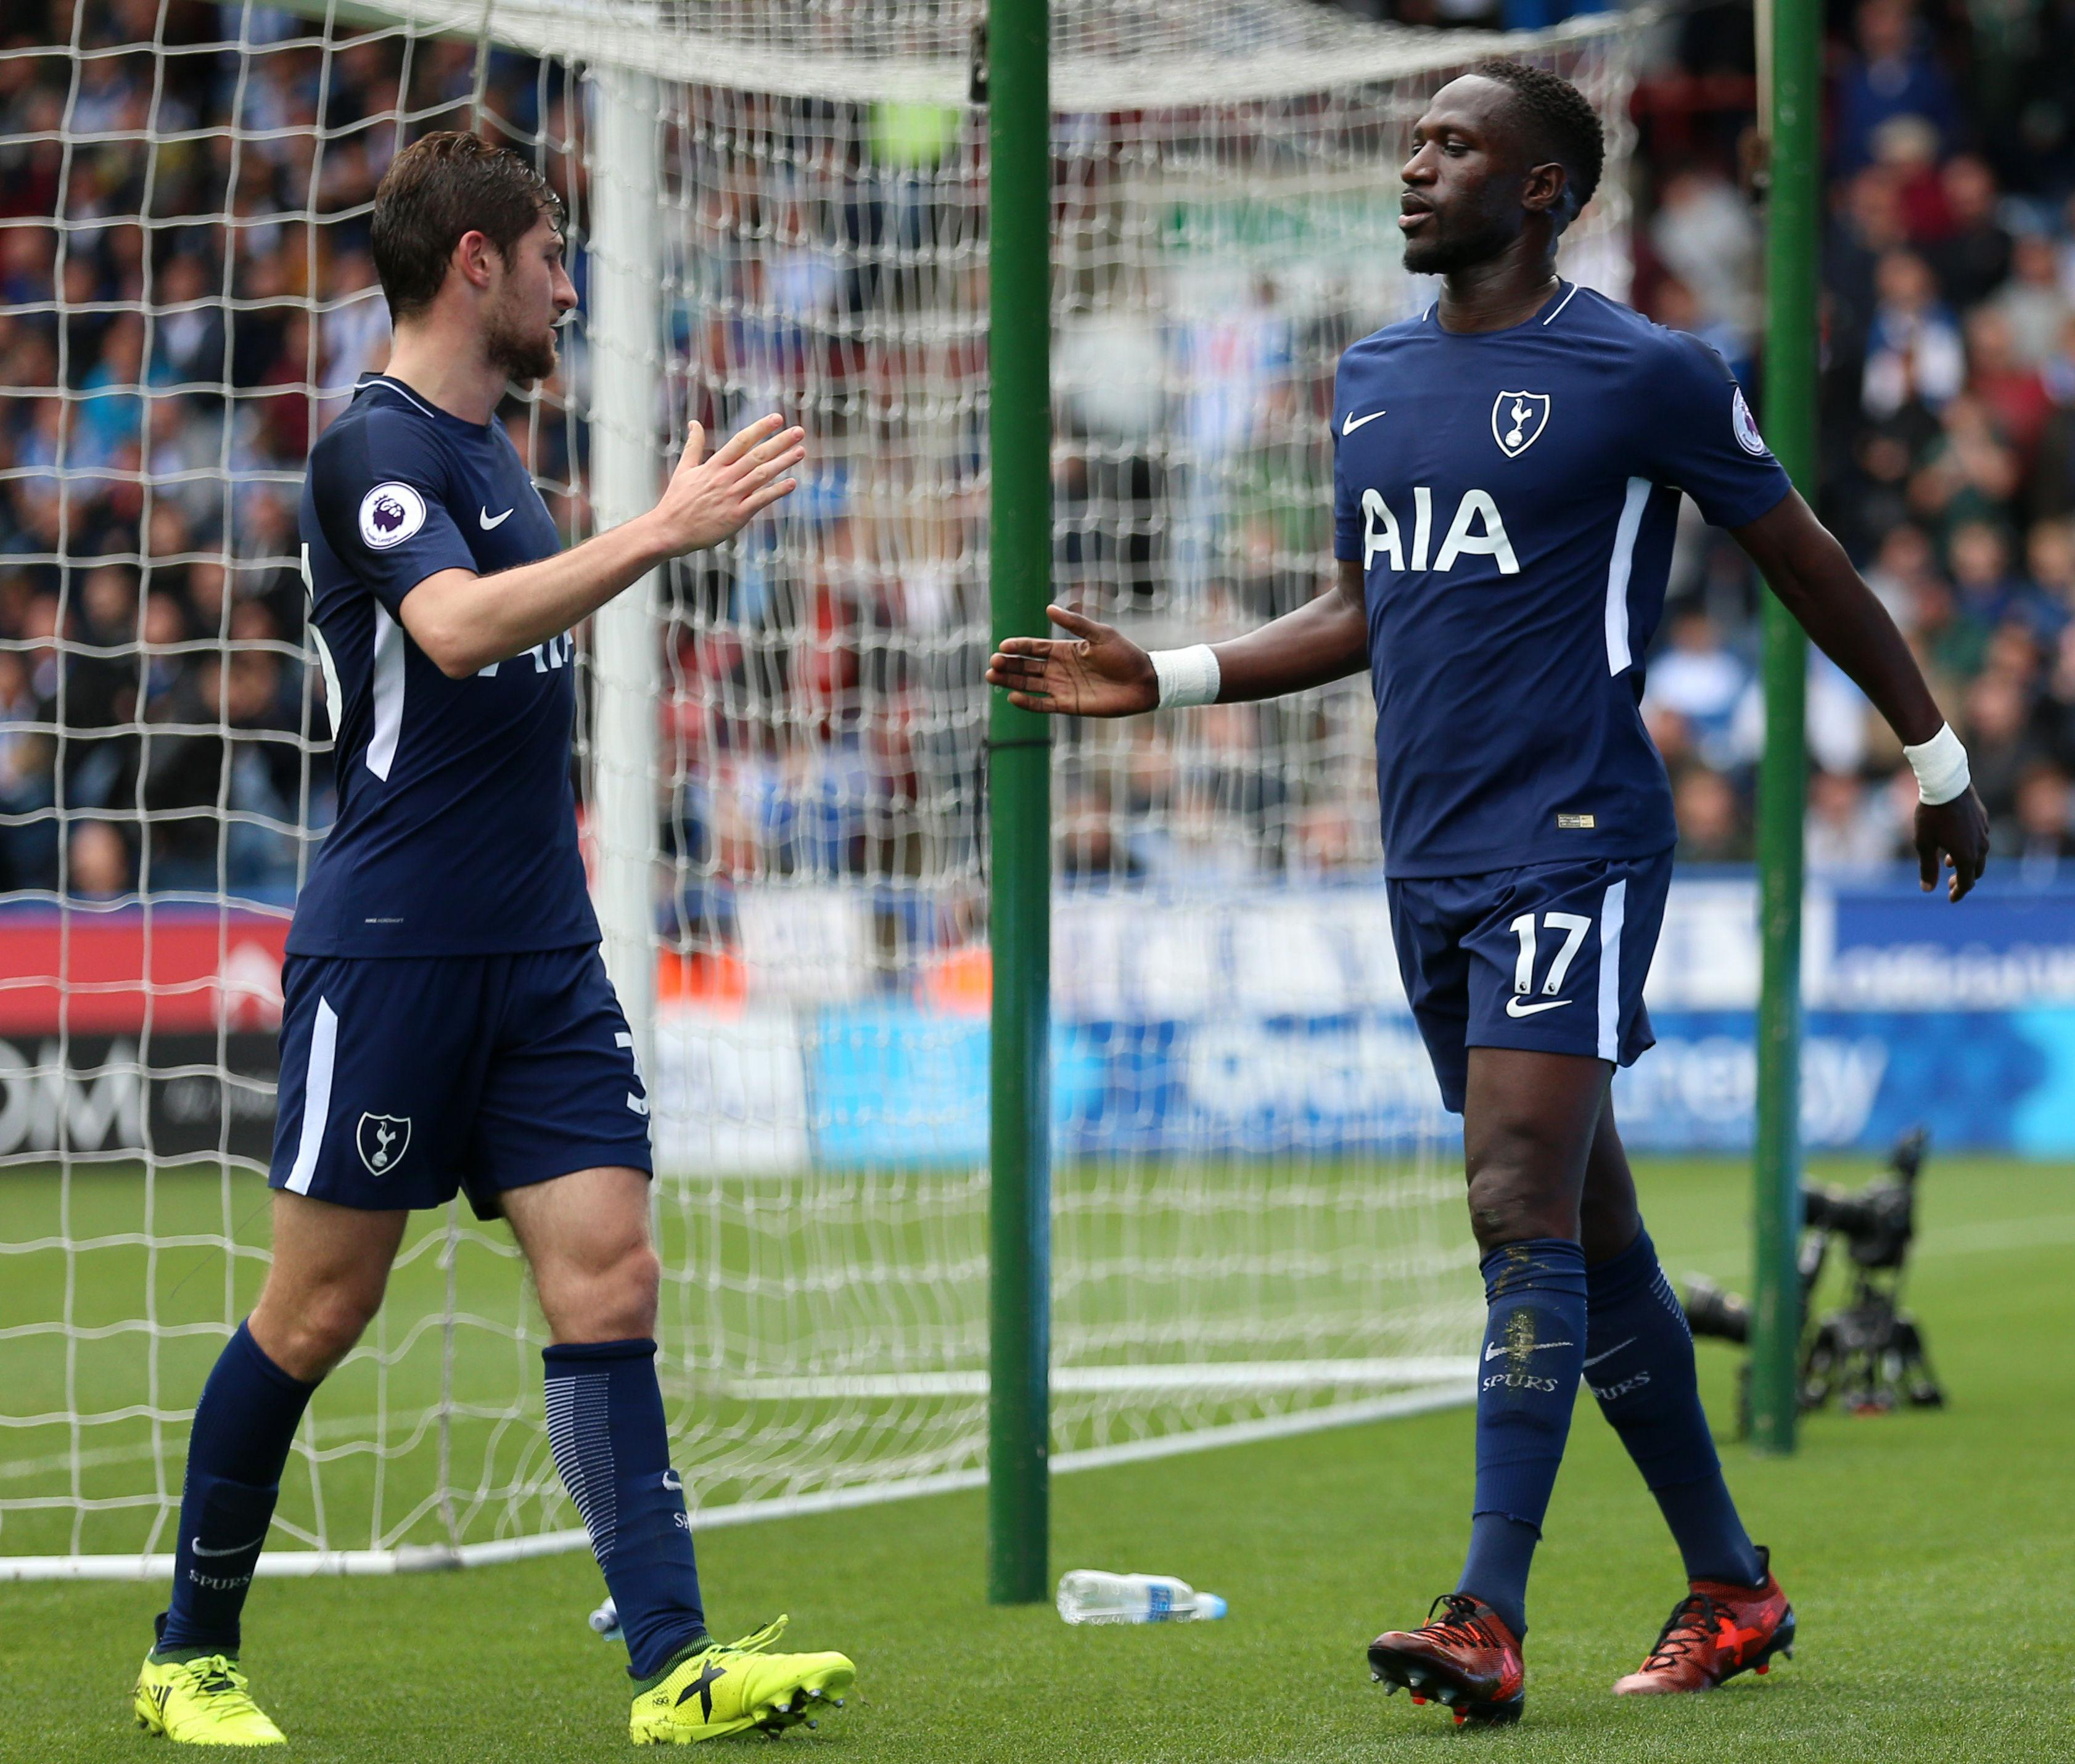 Davies set-up Moussa Sissoko for Tottenham's fourth goal on Saturday